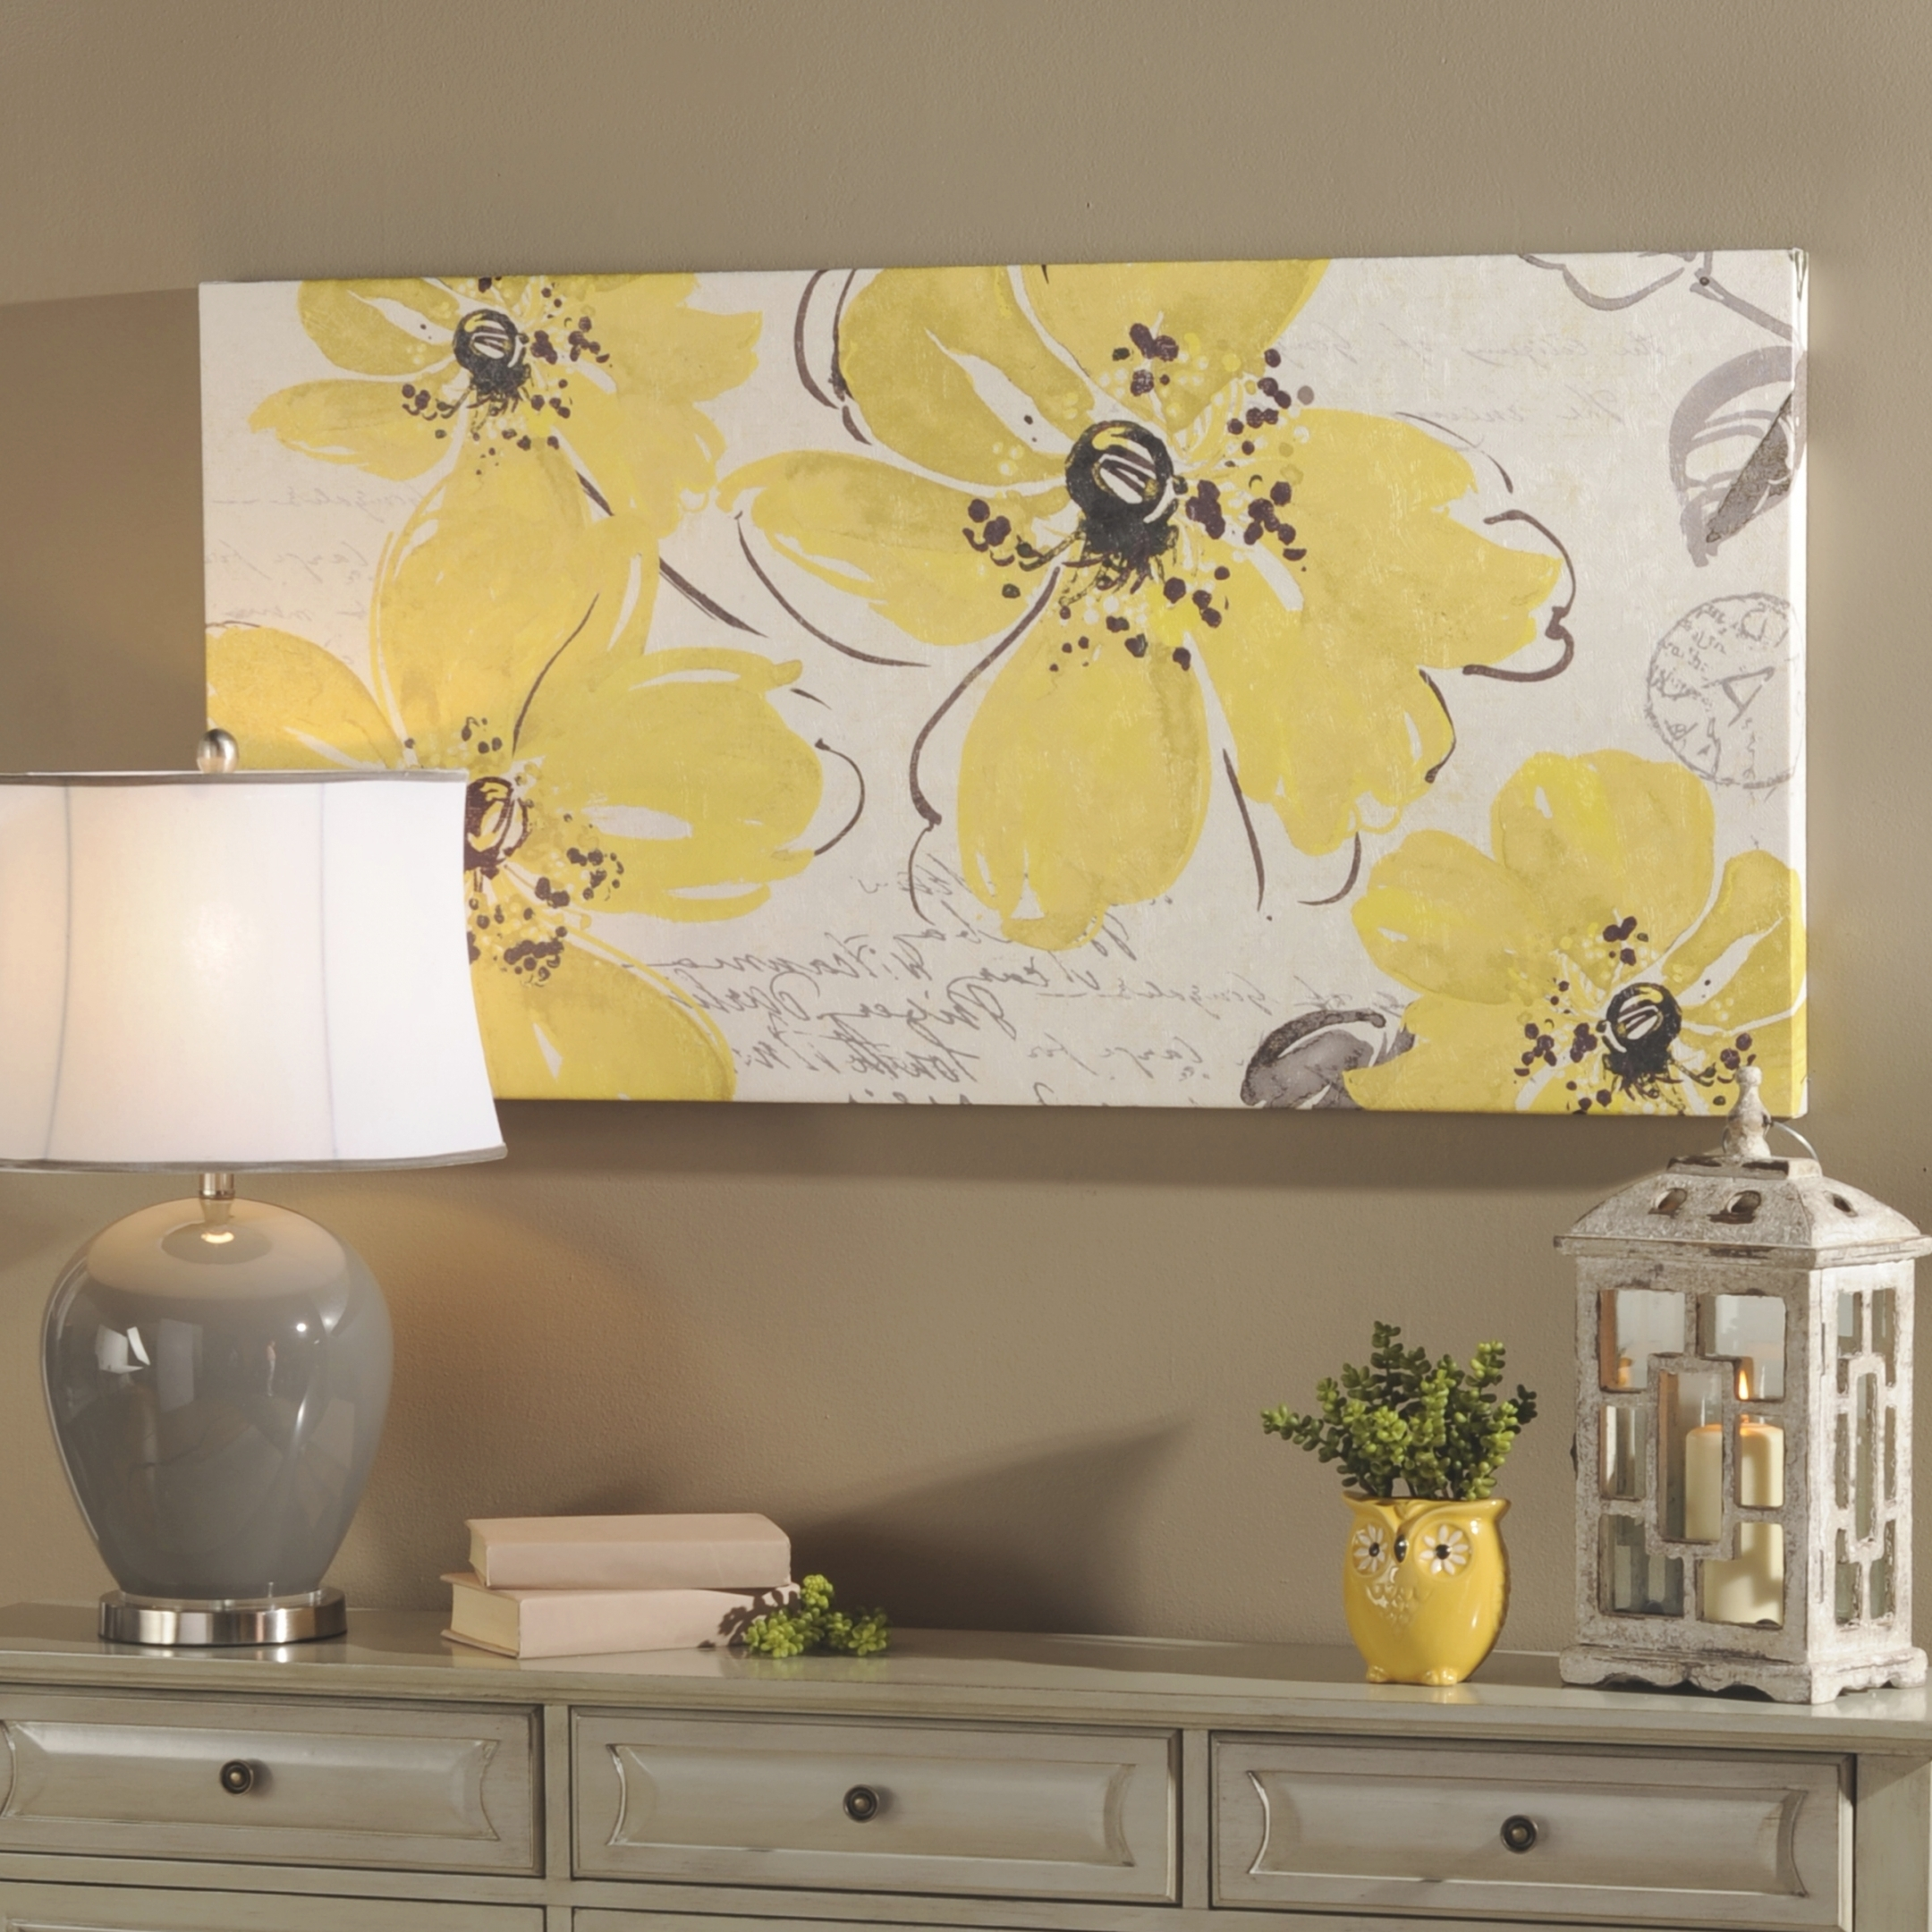 Decor: Kirklands Wall Art Metal With Wood Console Table Also Drum Within Latest Kirklands Wall Art (View 4 of 15)